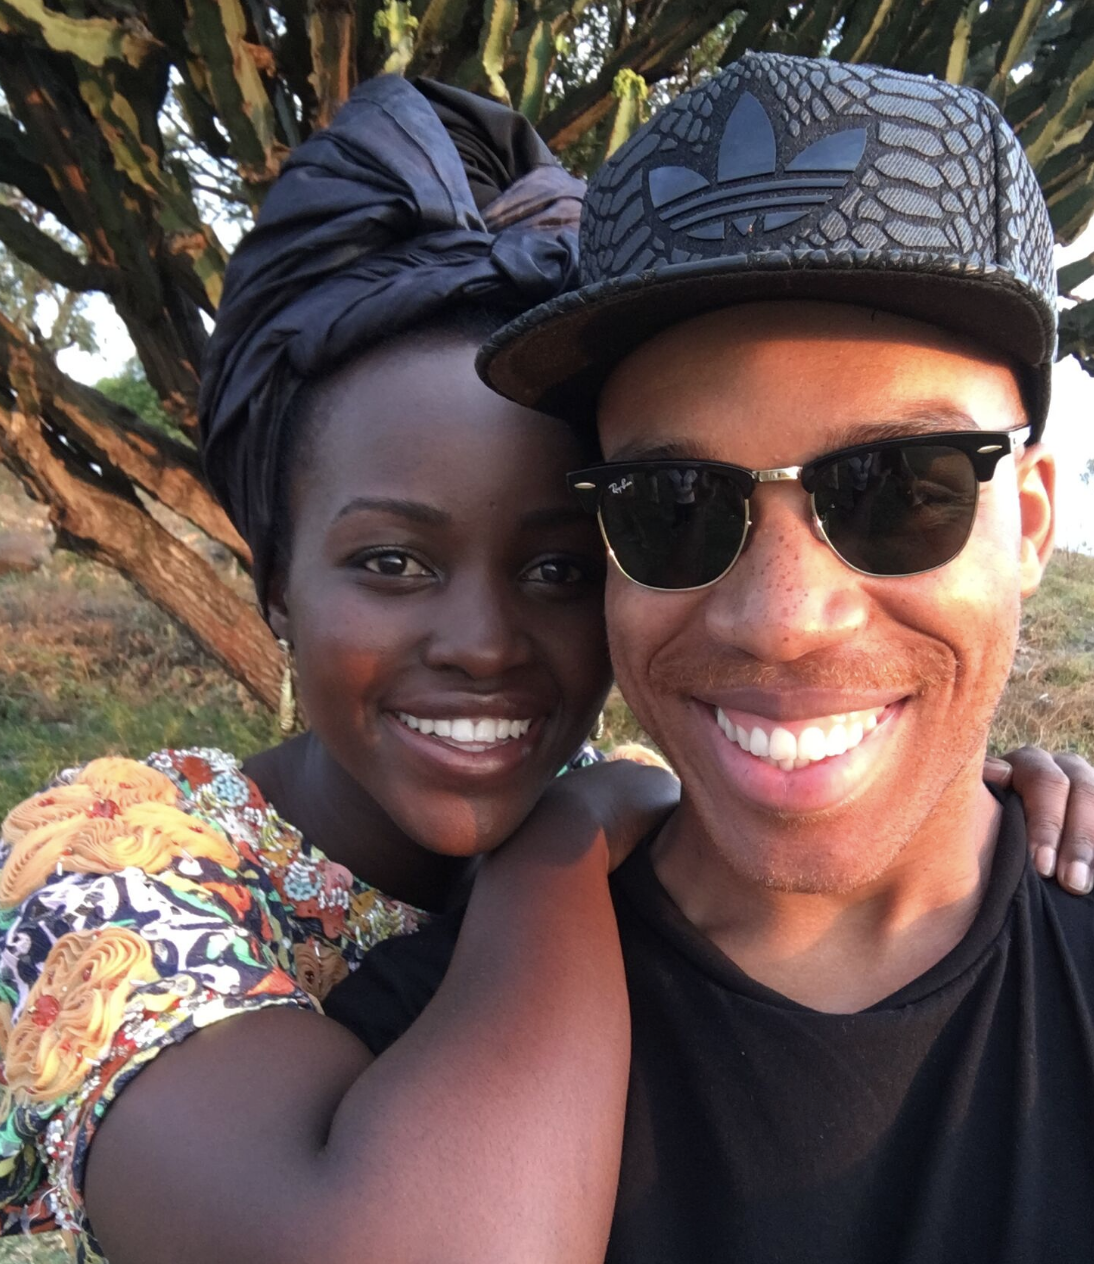 Lupita Nyong'o's Hairstylist Reveals The Story Behind Her Regal Headwraps For Vogue Cover Shoot